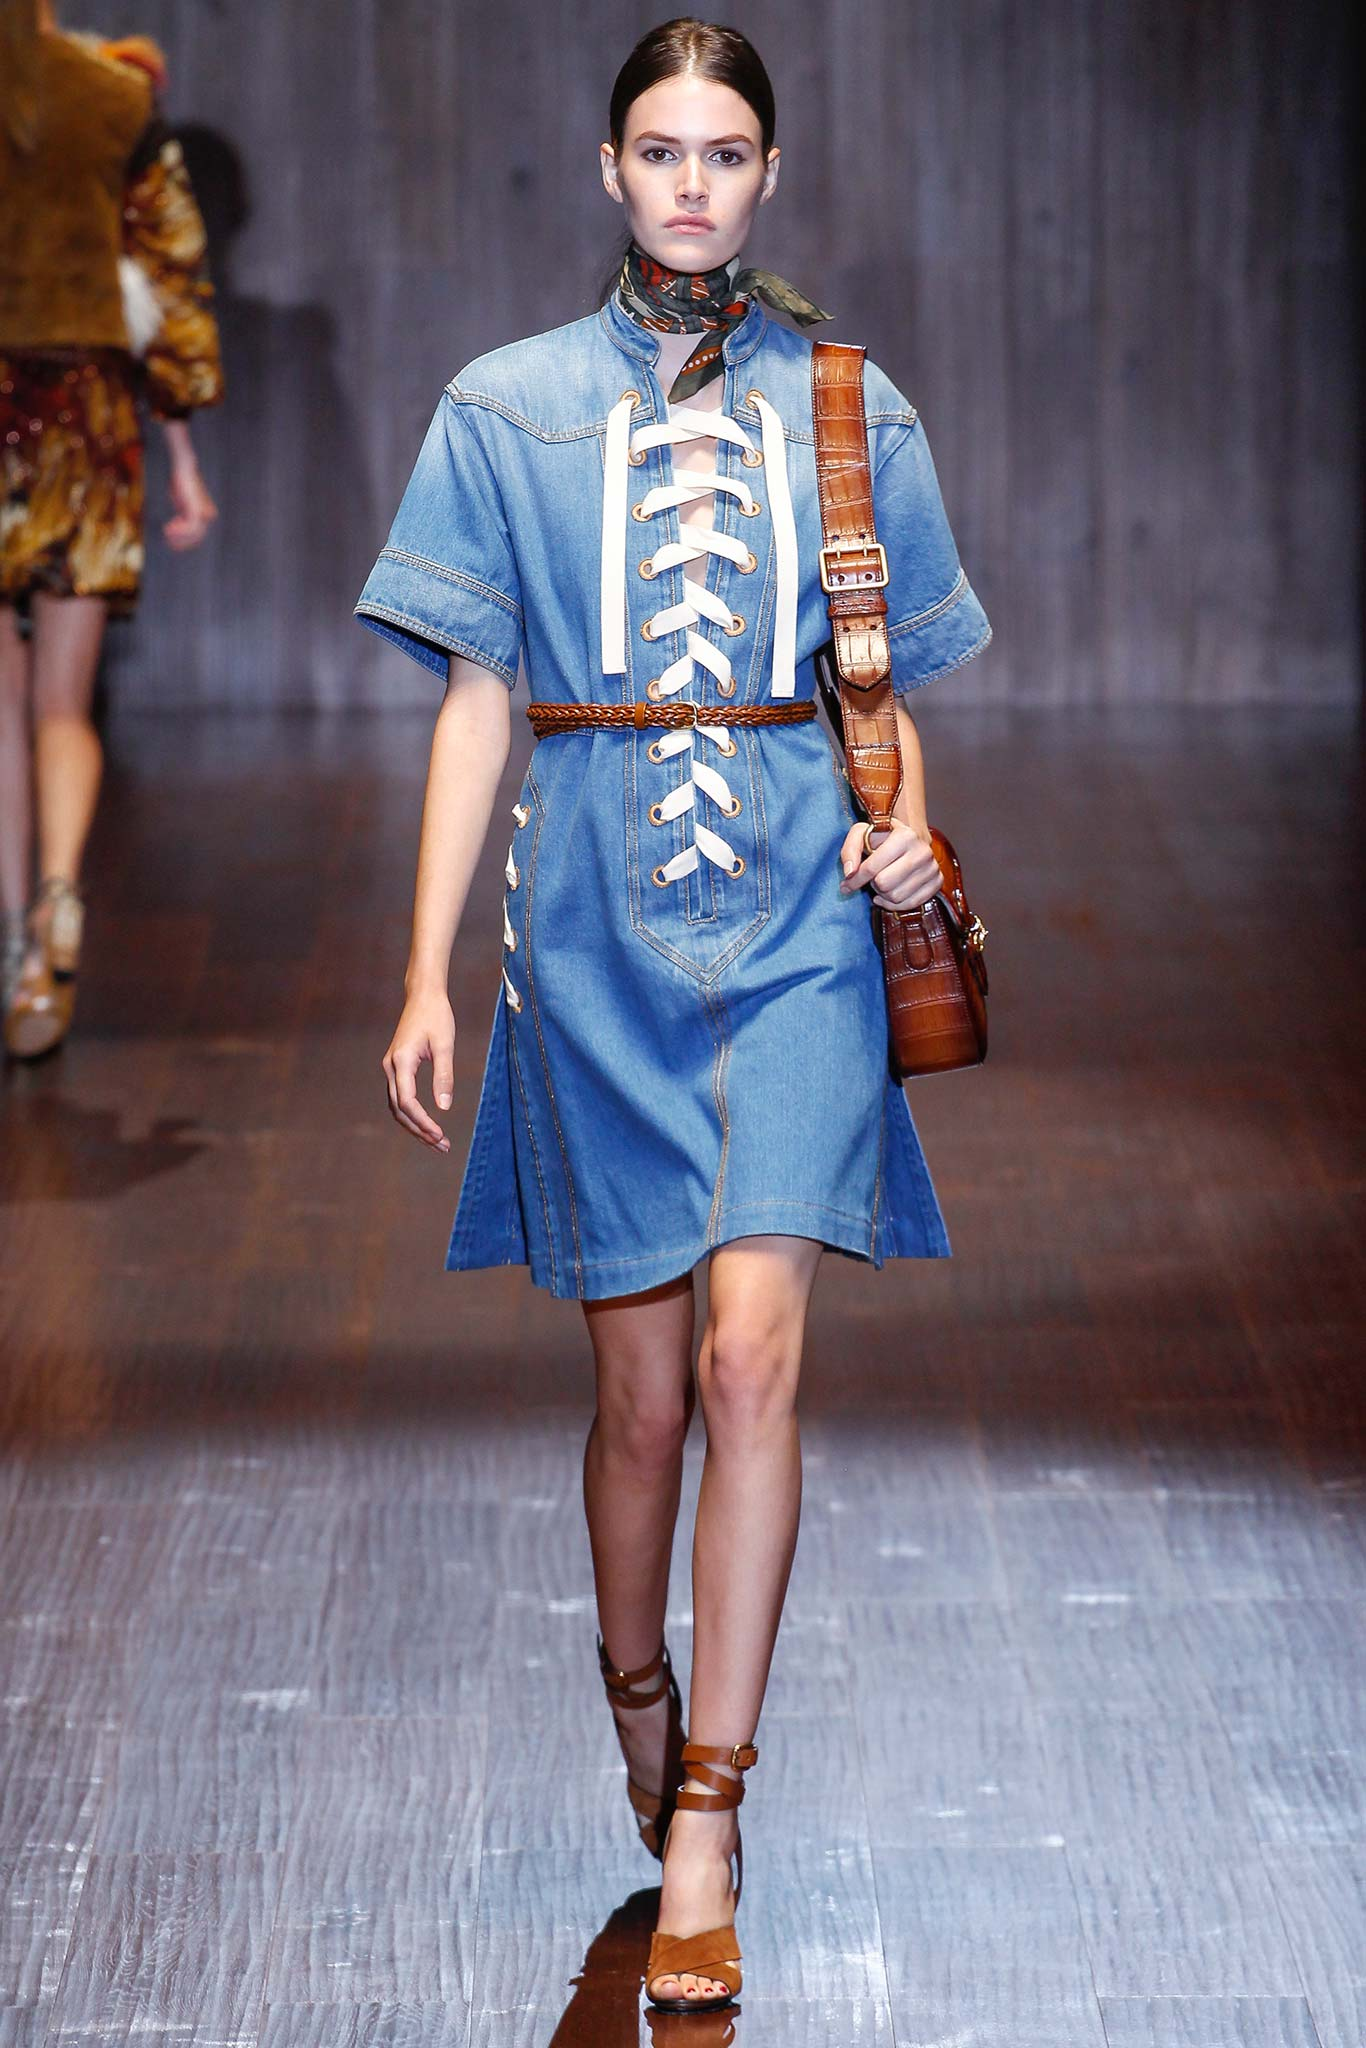 a gucci spring summer 2015 denim dress